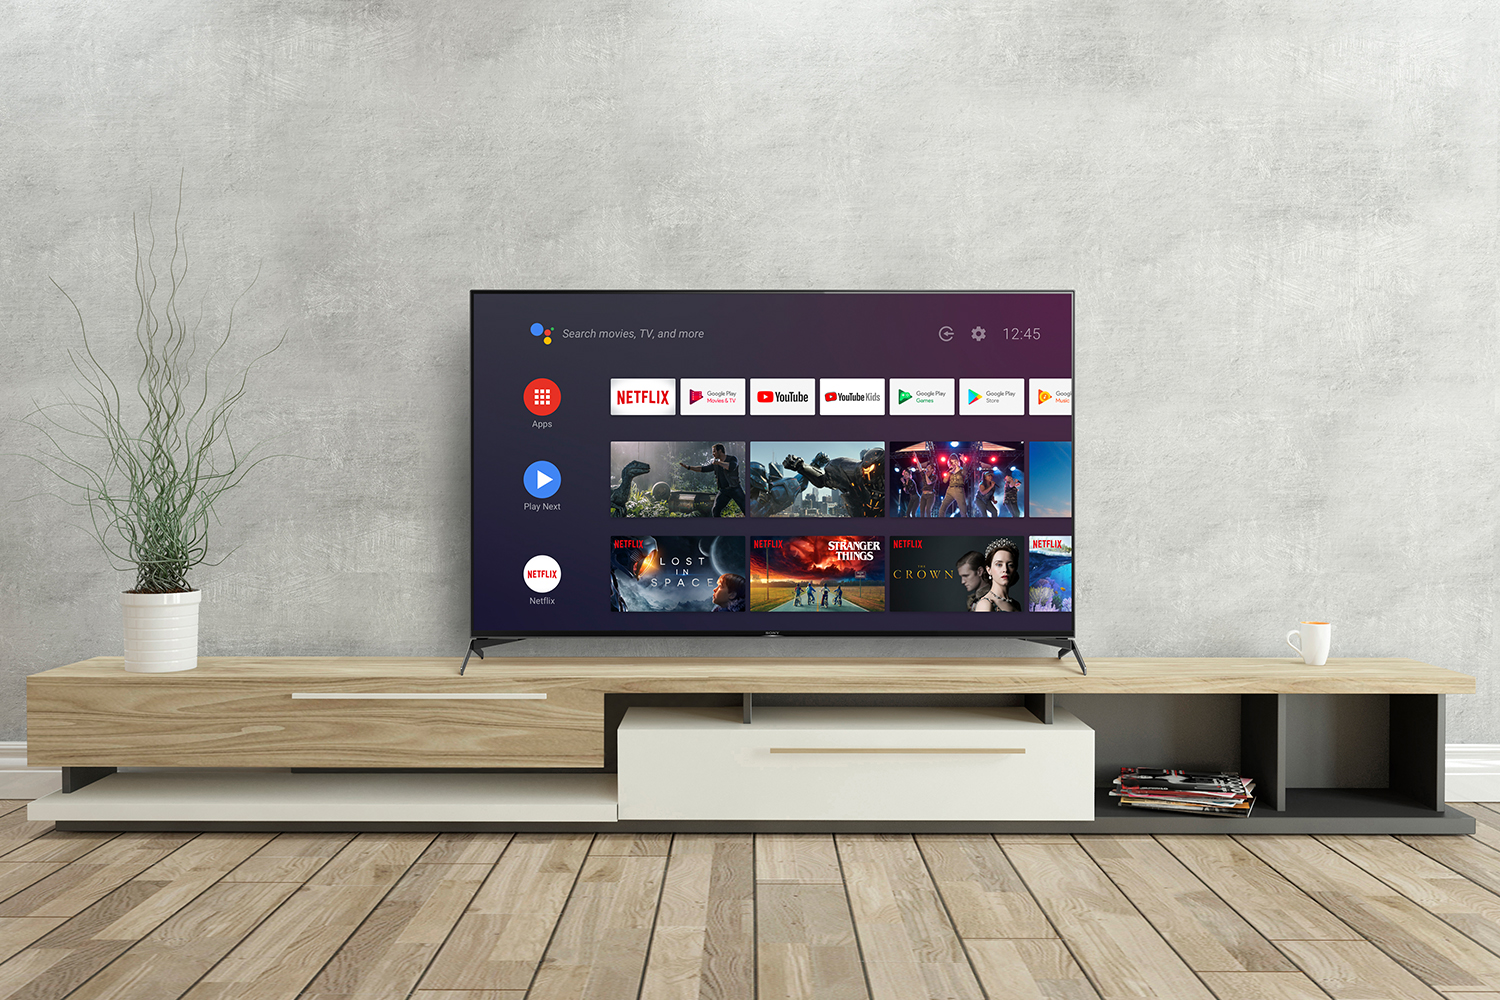 Sony X950H television